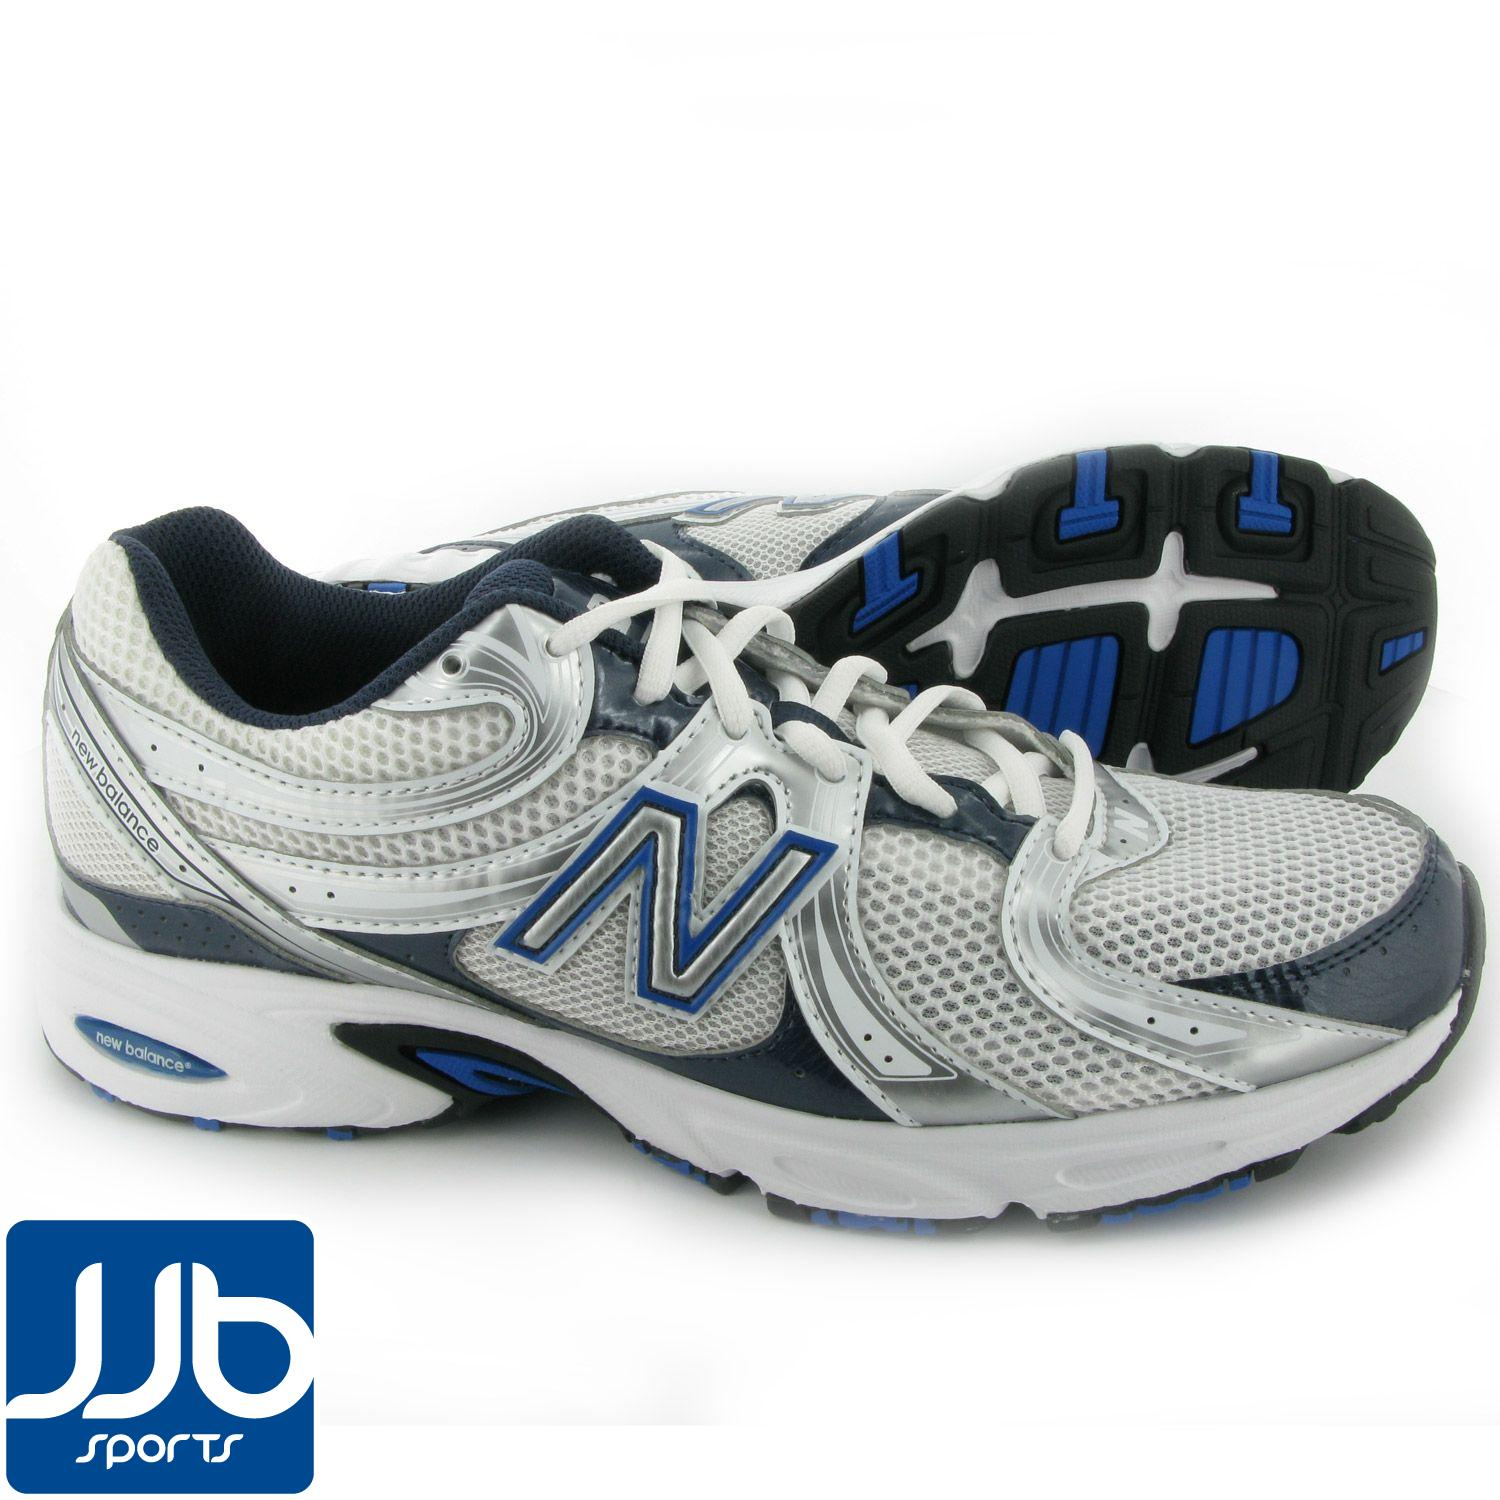 new balance mr470 durable and cushioned entry level mens